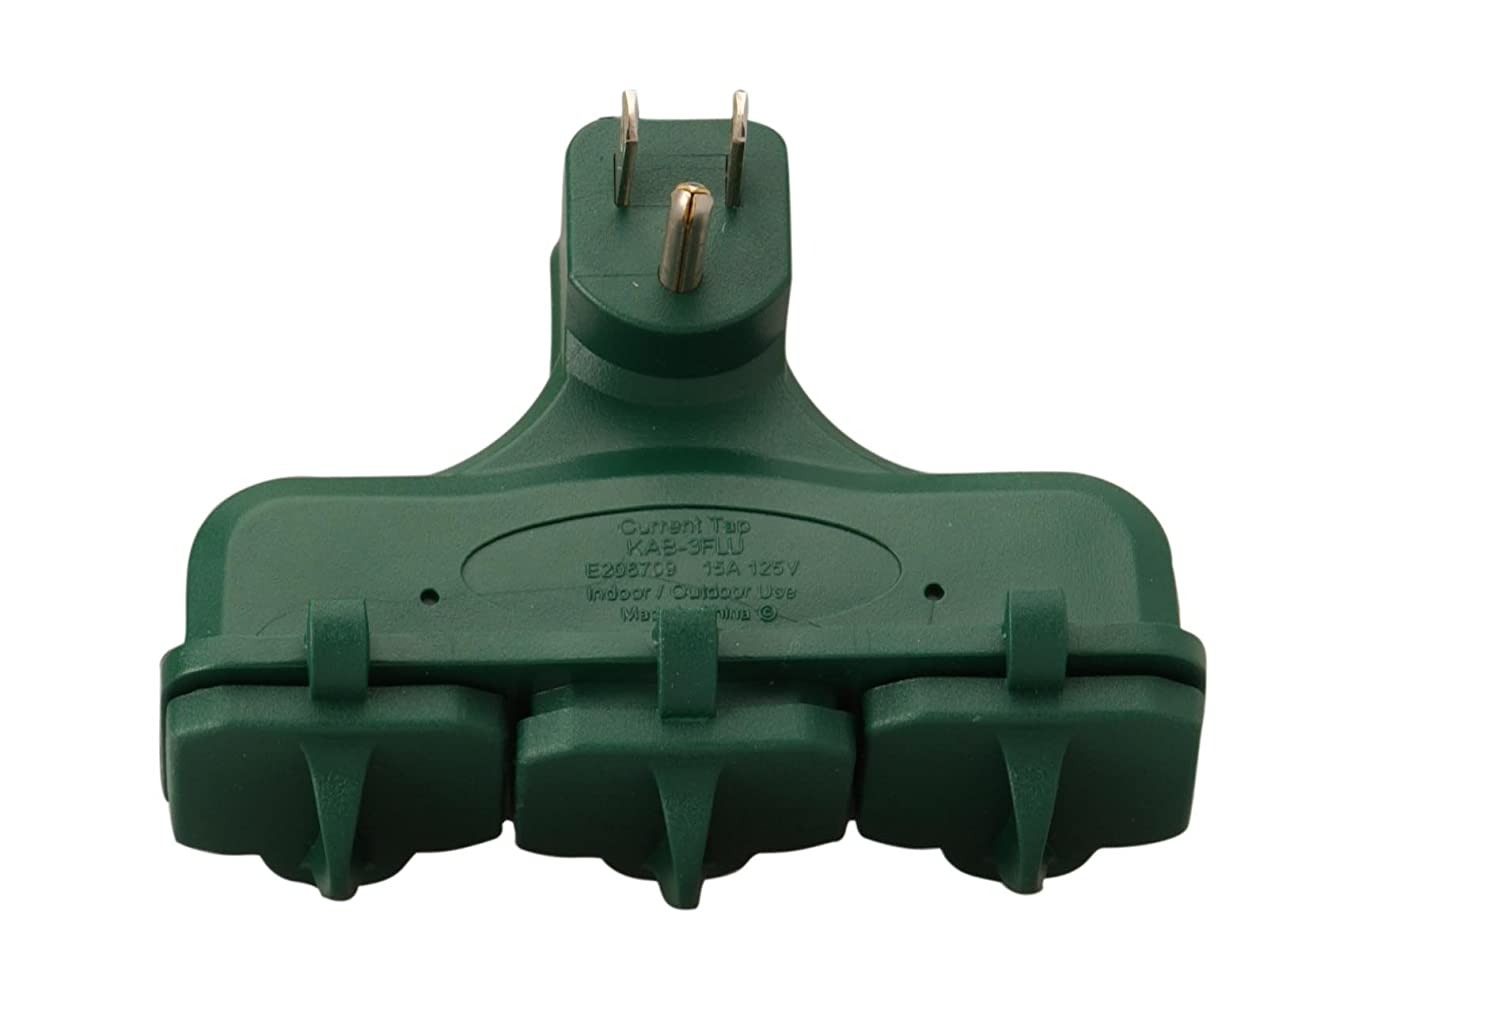 Woods 13270 3-Outlet Adapter Suitable For Outdoor Or Indoor Use, Weatherproof, Ideal for Holiday Decorations, Space Saving Right Angled Multi Adapter, Durable and Versatile, Green Color